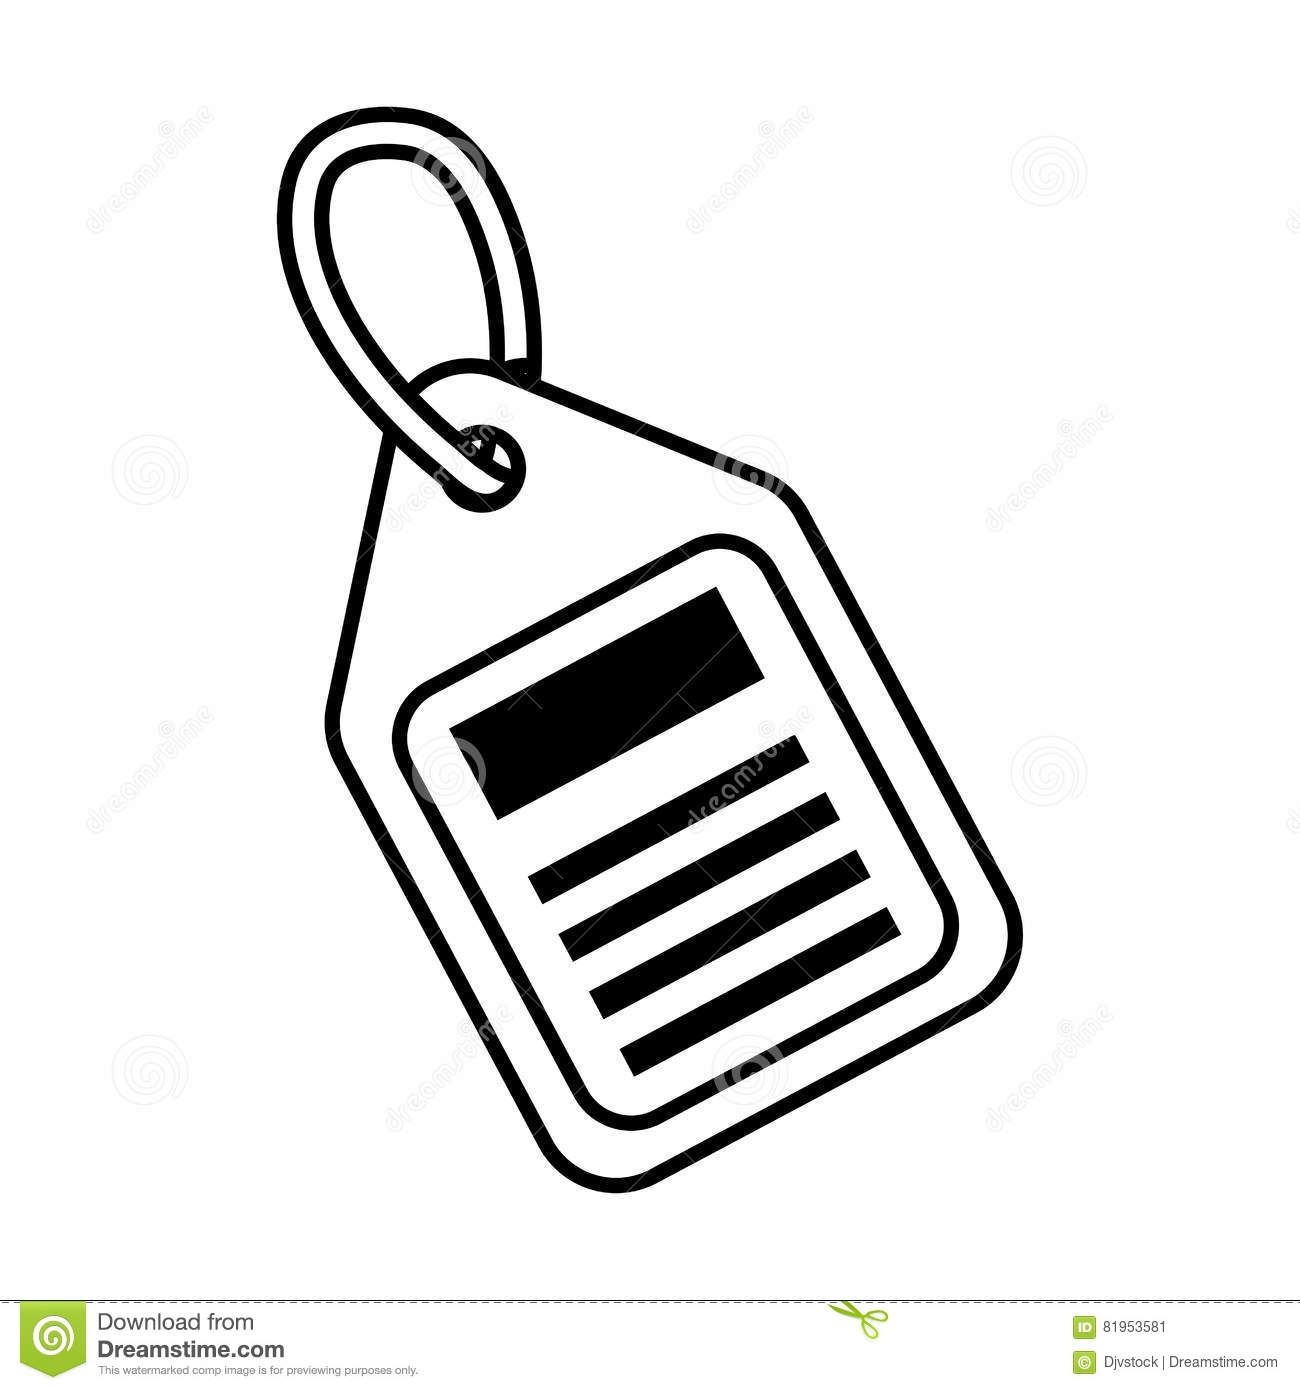 Price Tag Sale Blank Outline Stock Vector - Illustration ...